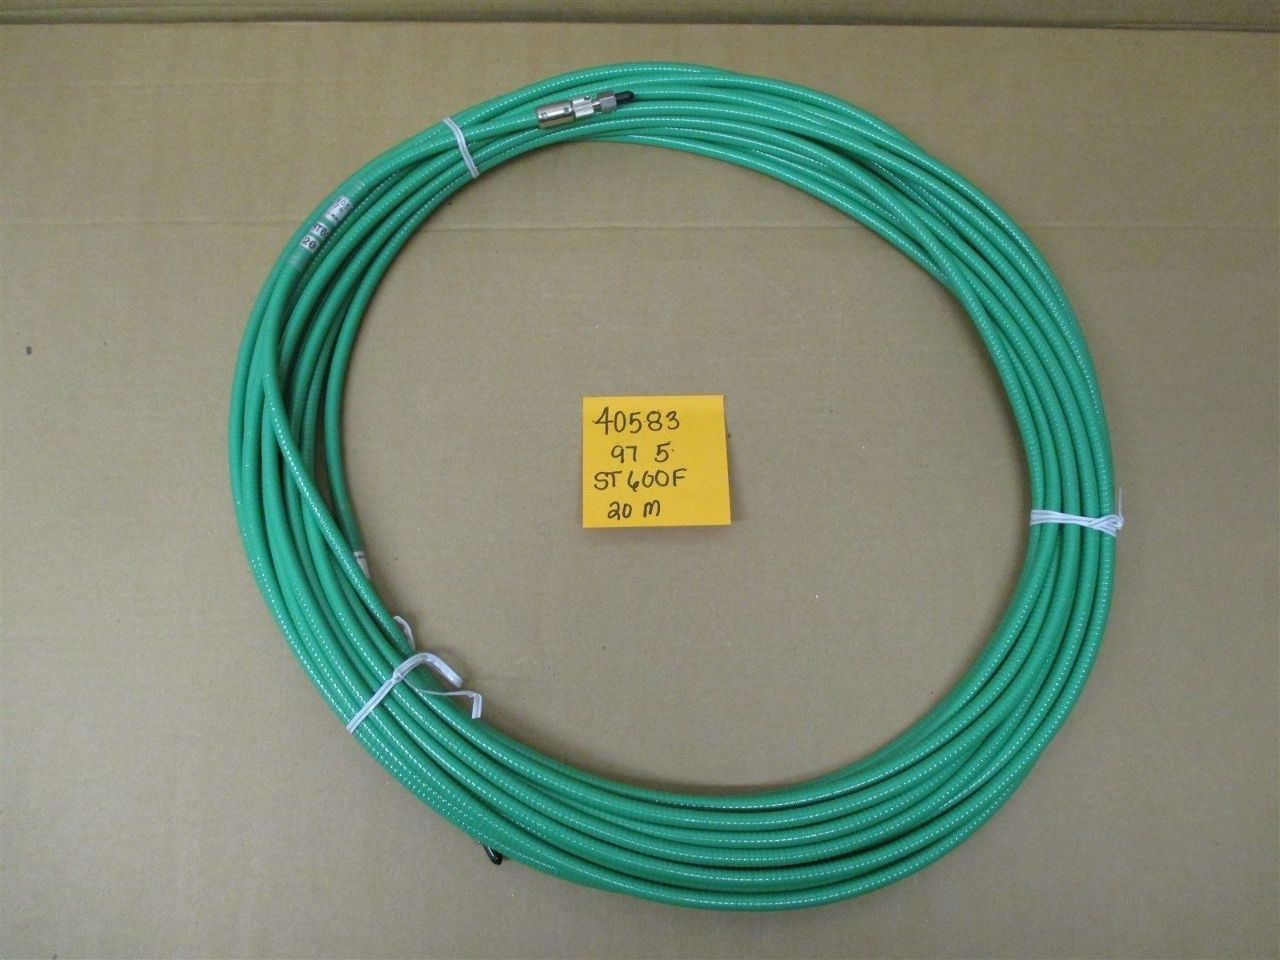 Mitsubishi St600f 20m Fiber Optic Cable Process Industrial Surplus Electronics Electricity Gt Optical Wire Power